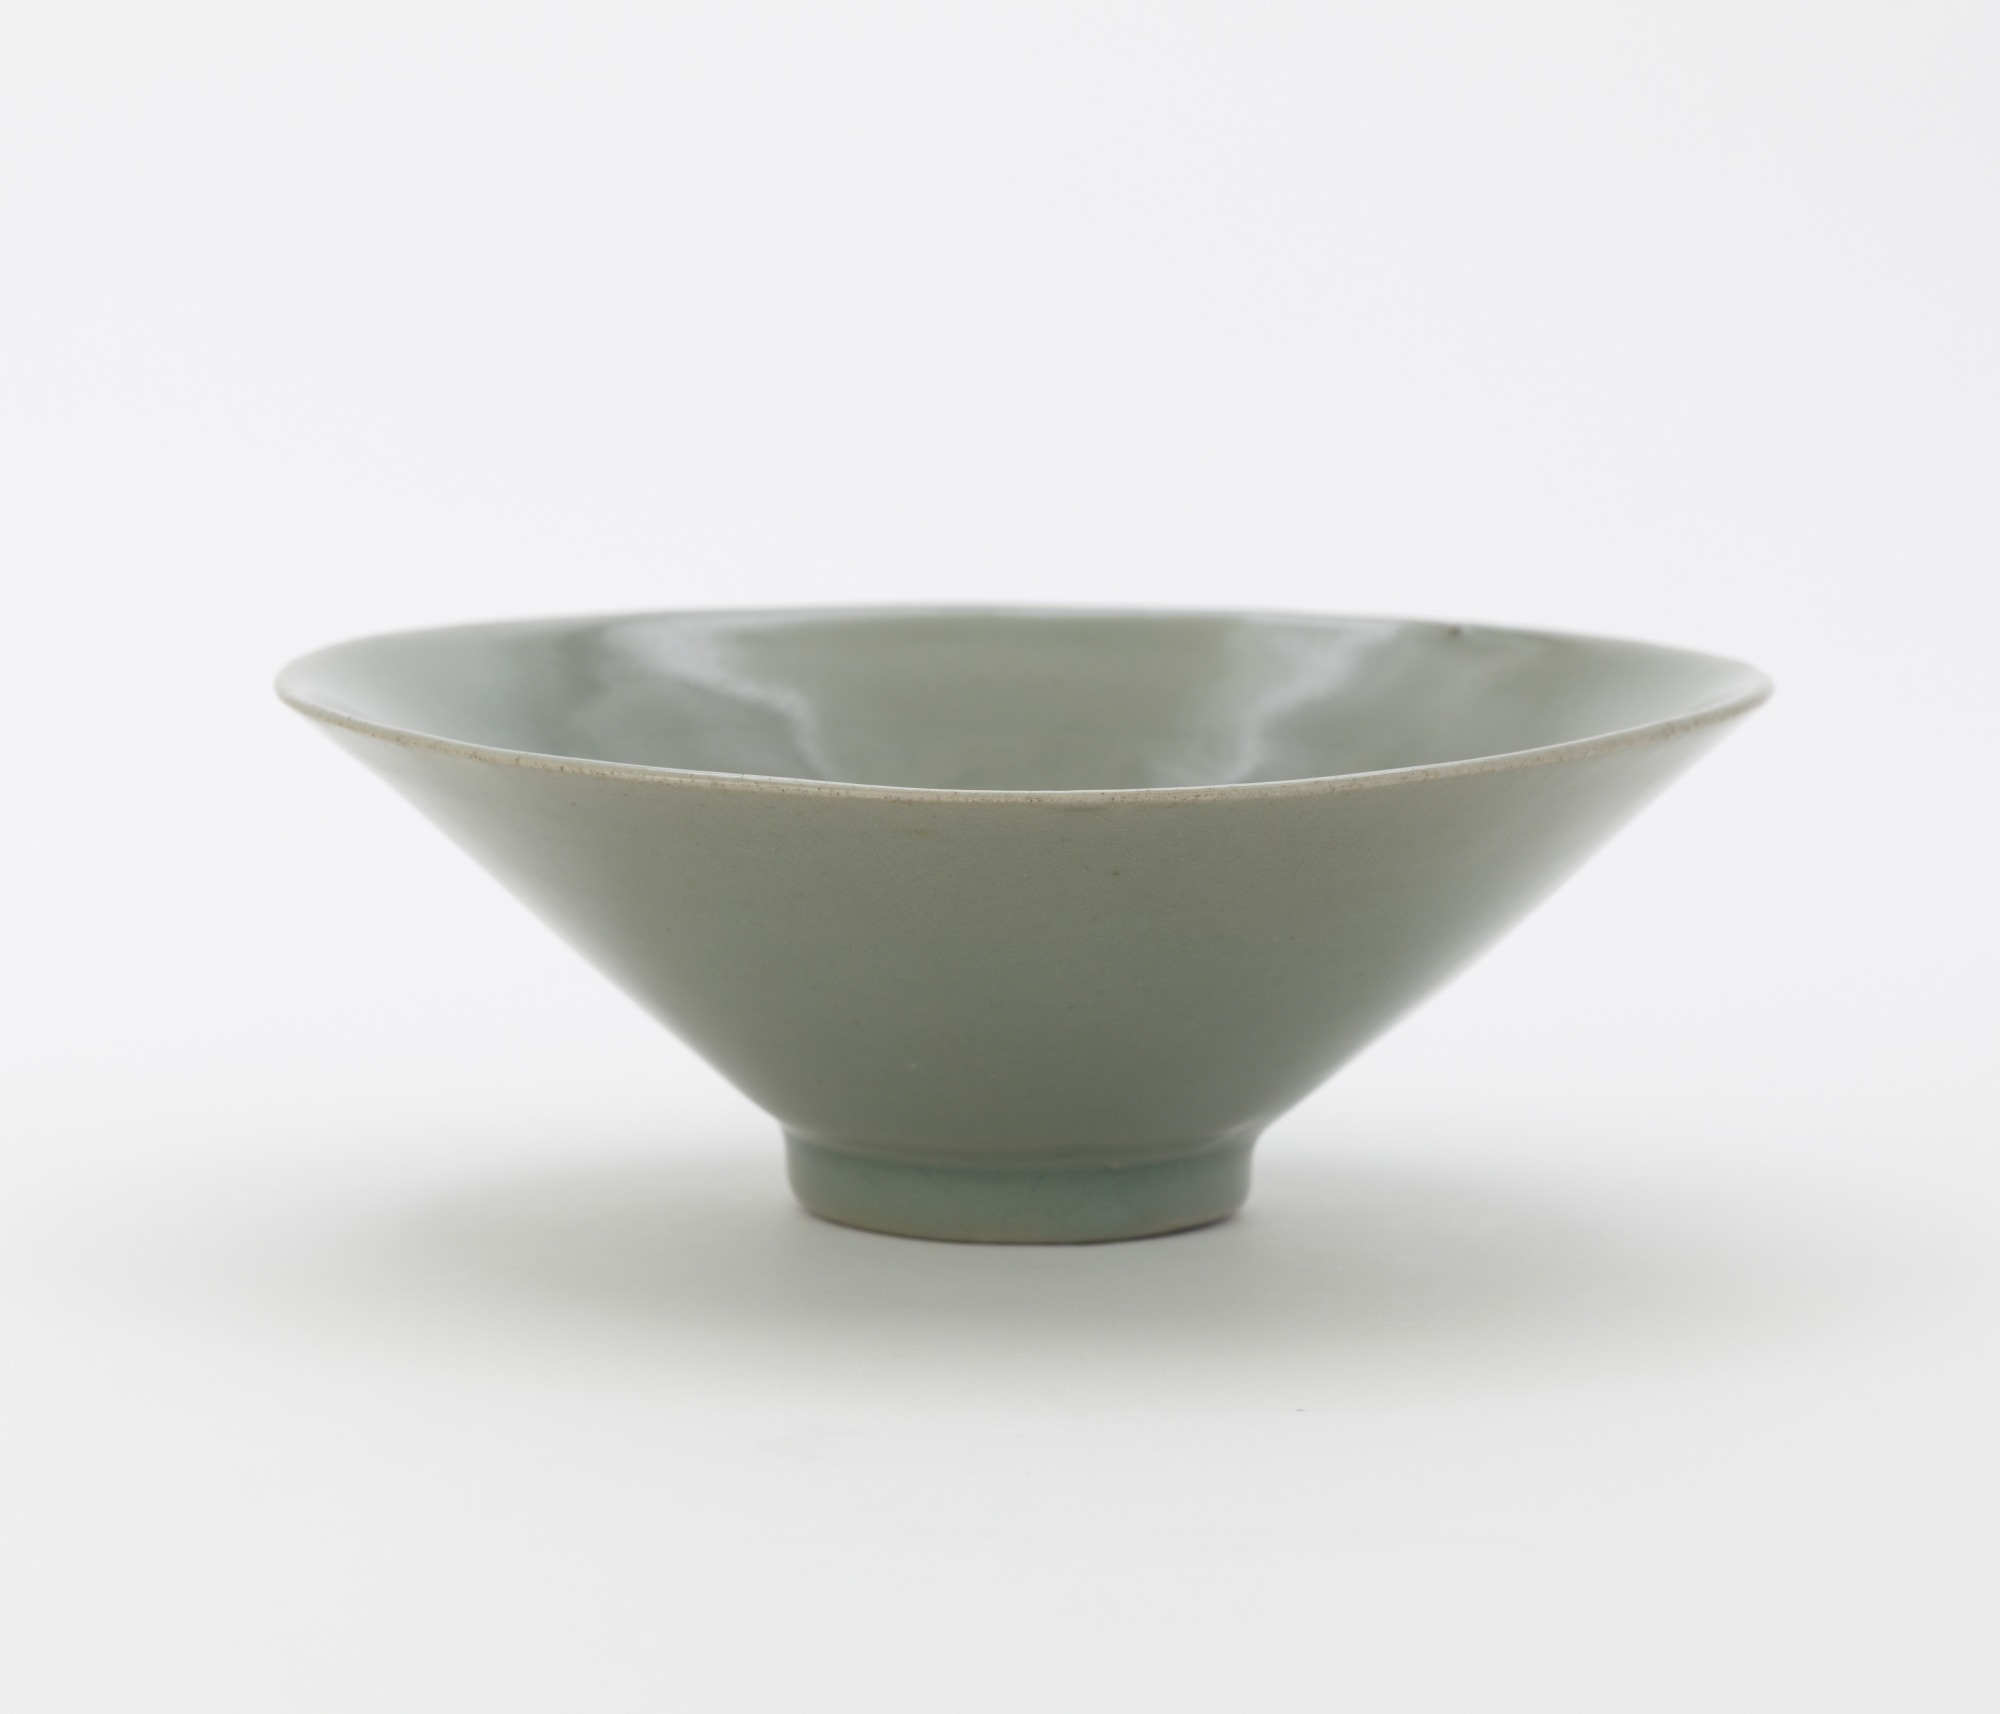 Bowl with molded and incised decoration of floral vinescroll, profile